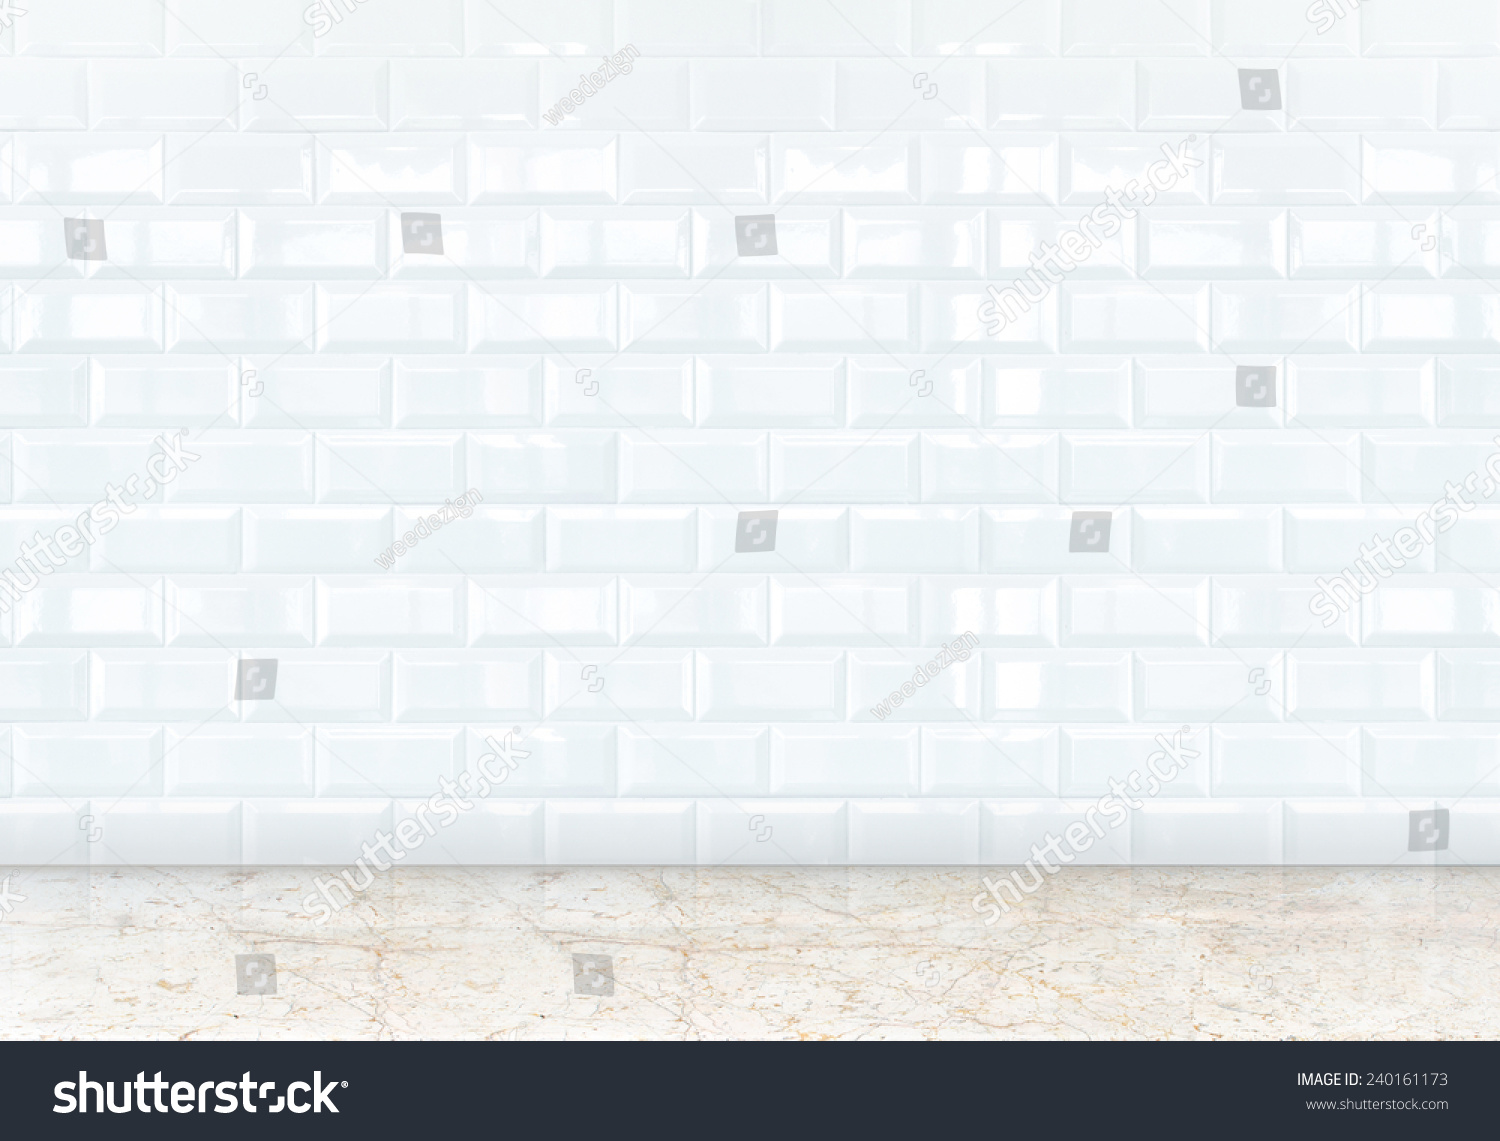 Empty Perspective Room With White Ceramic Tiles Wall And Marble Floor Templat